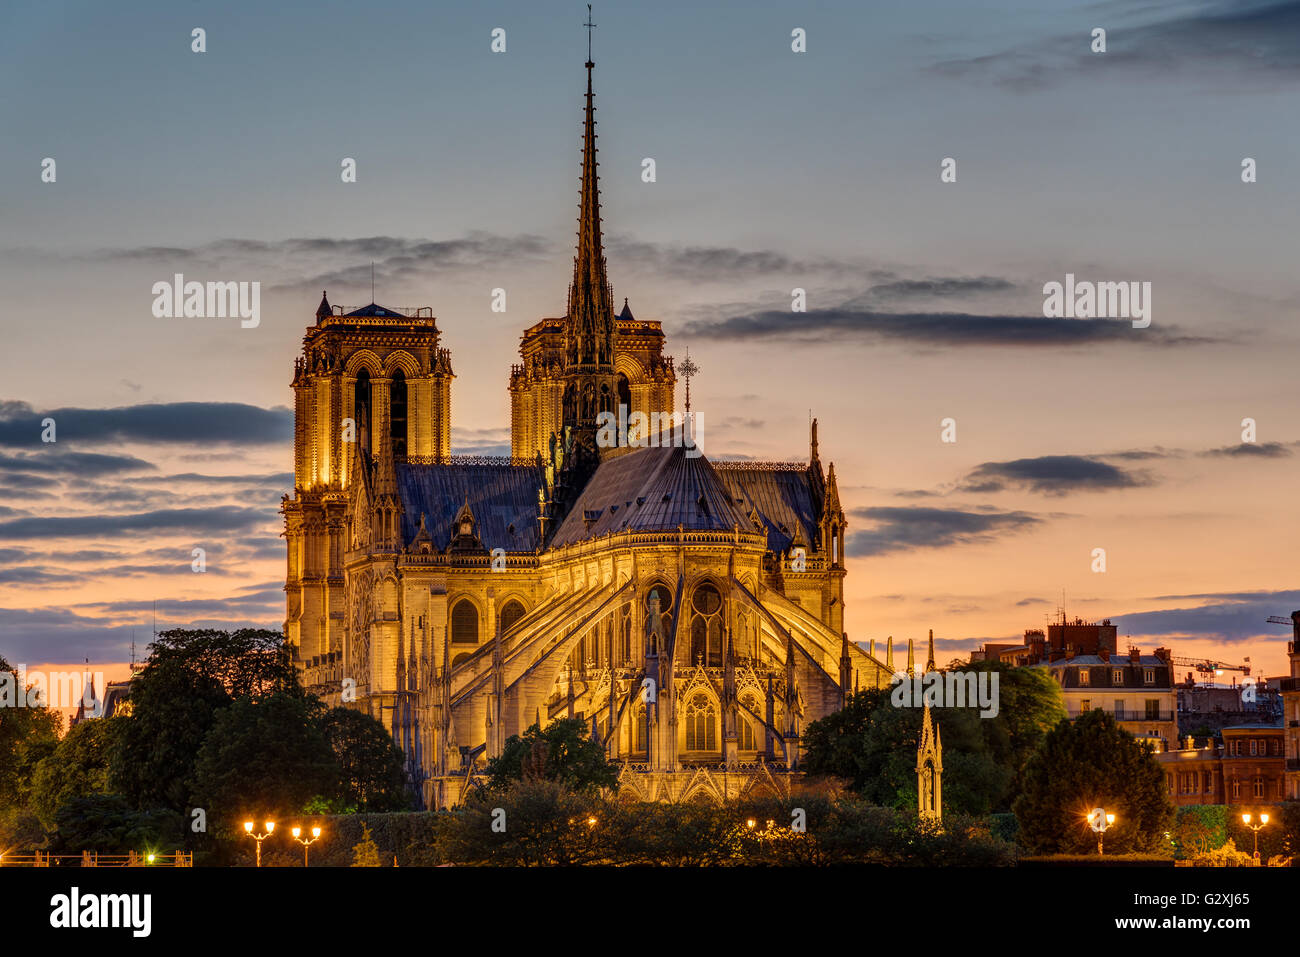 The backside of the famous Notre Dame cathedral in Paris at dawn Stock Photo